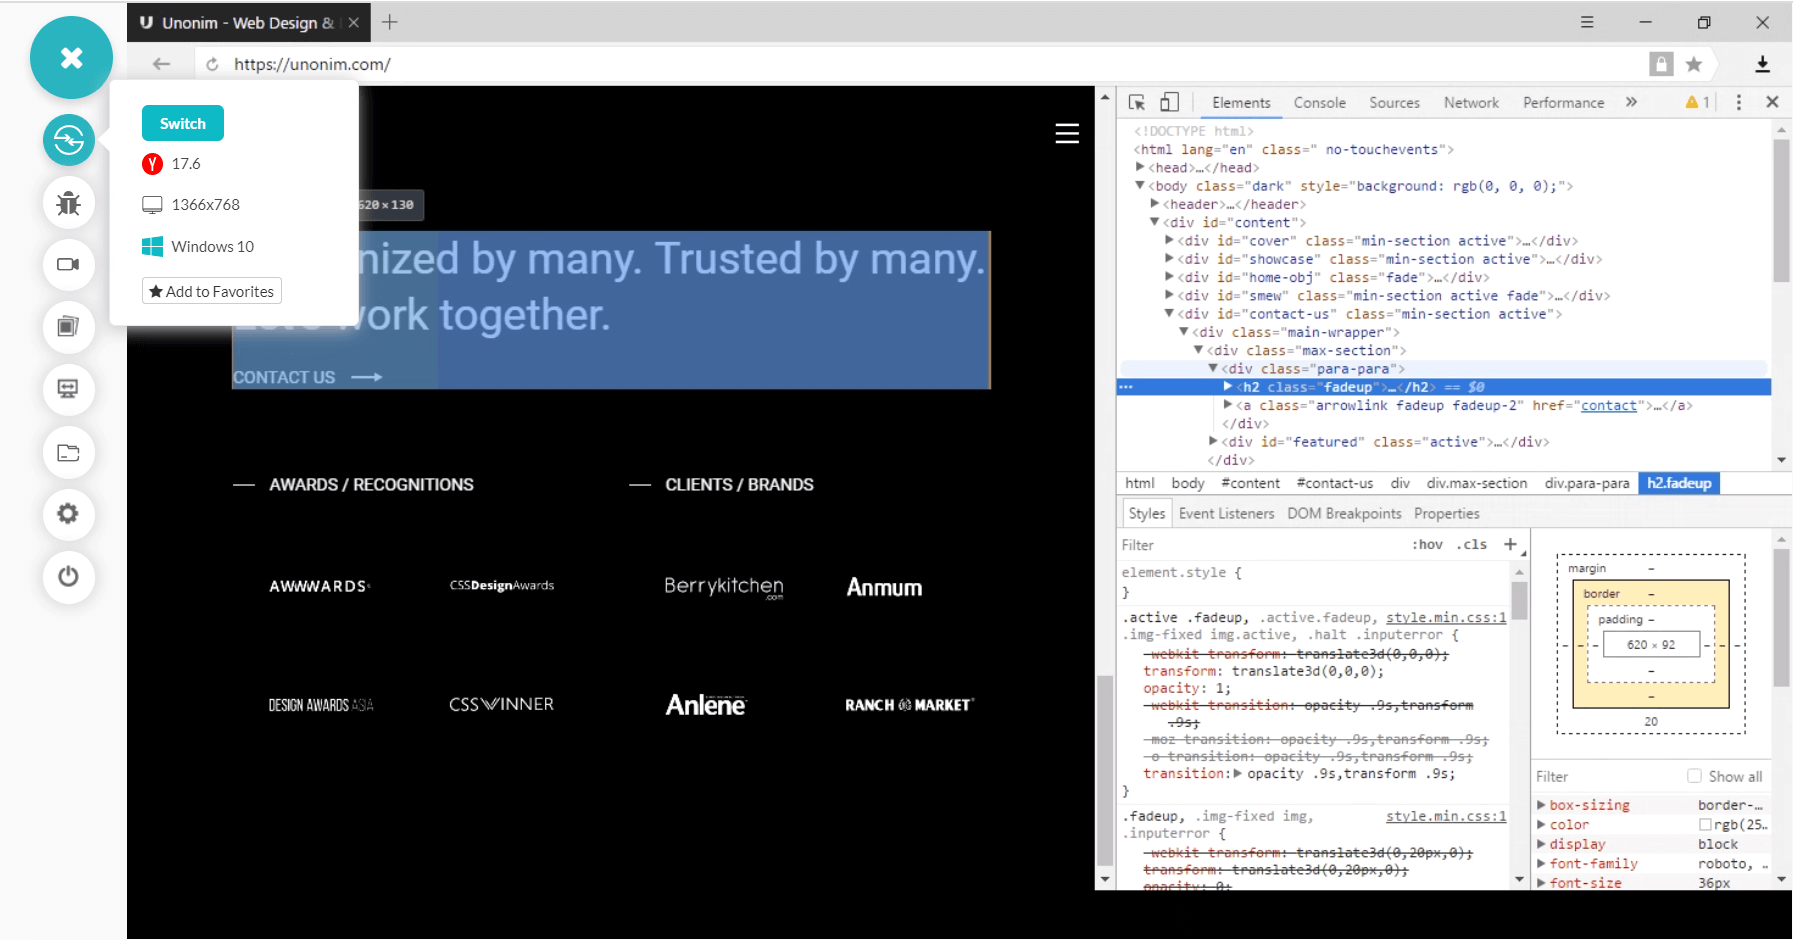 cross browser testing on Opera Browsers